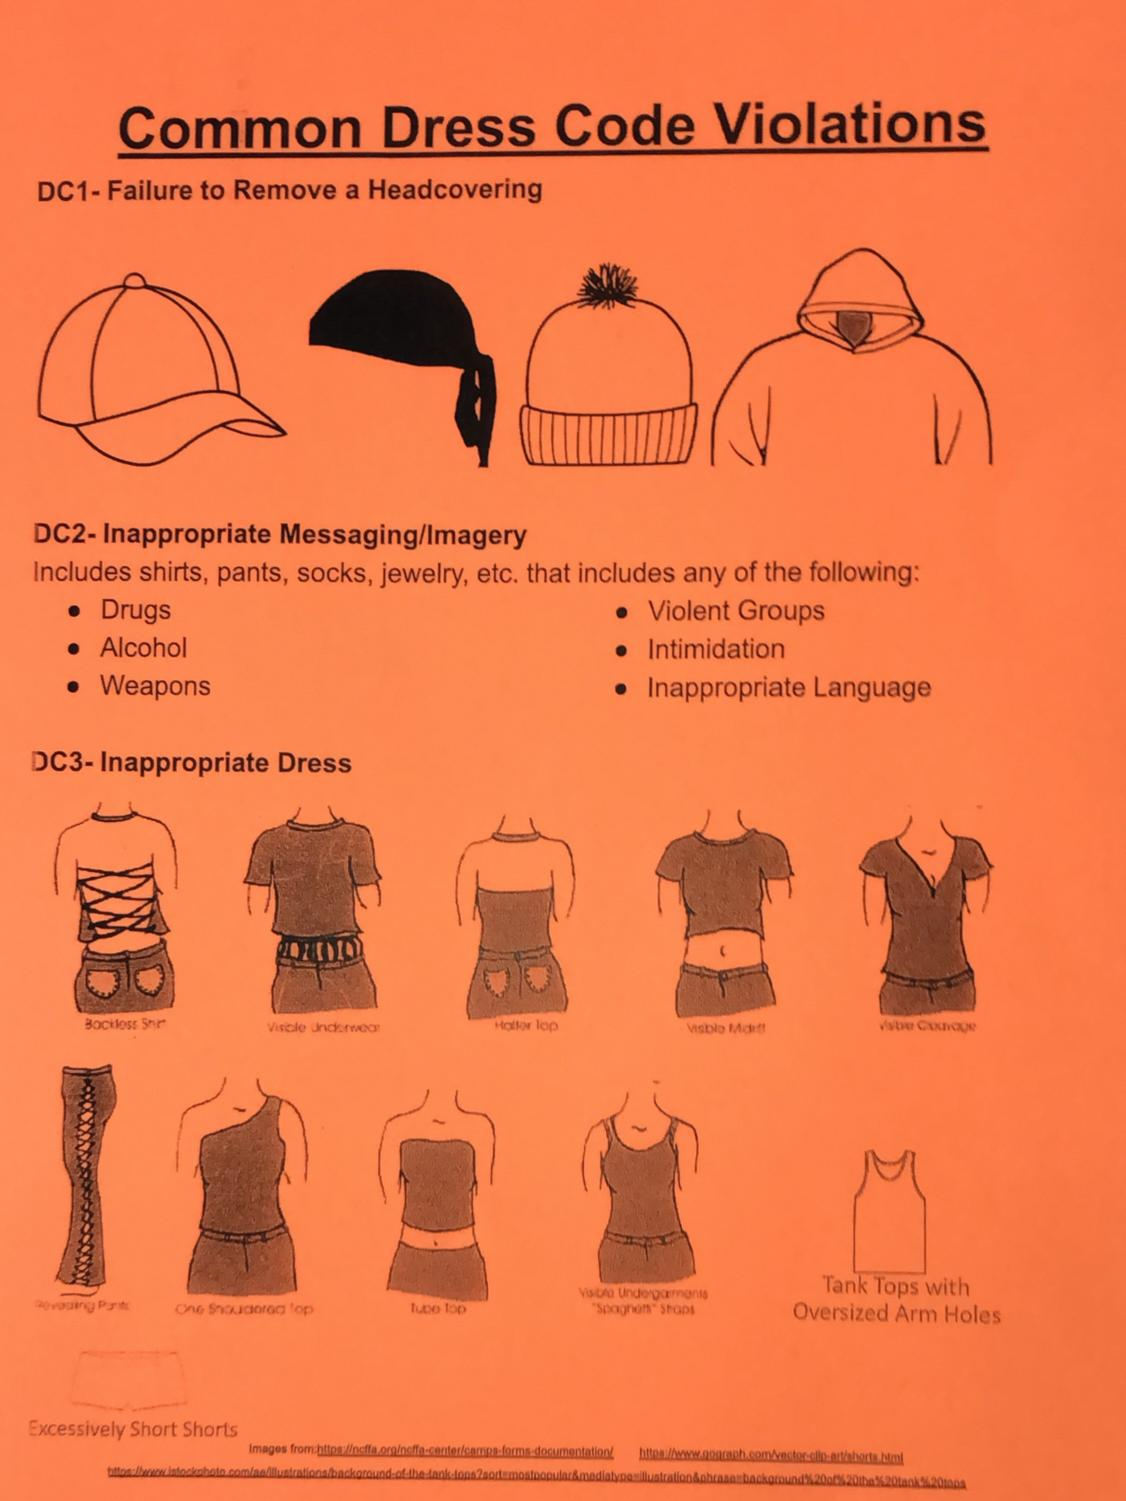 Depicting images of prohibited clothing, these orange posters received a huge amount of  backlash from the student body and have recently been taken down. The posters were created in light of the new dress code enforcement program the Solutions Team at Millbrook sought to bring to life.